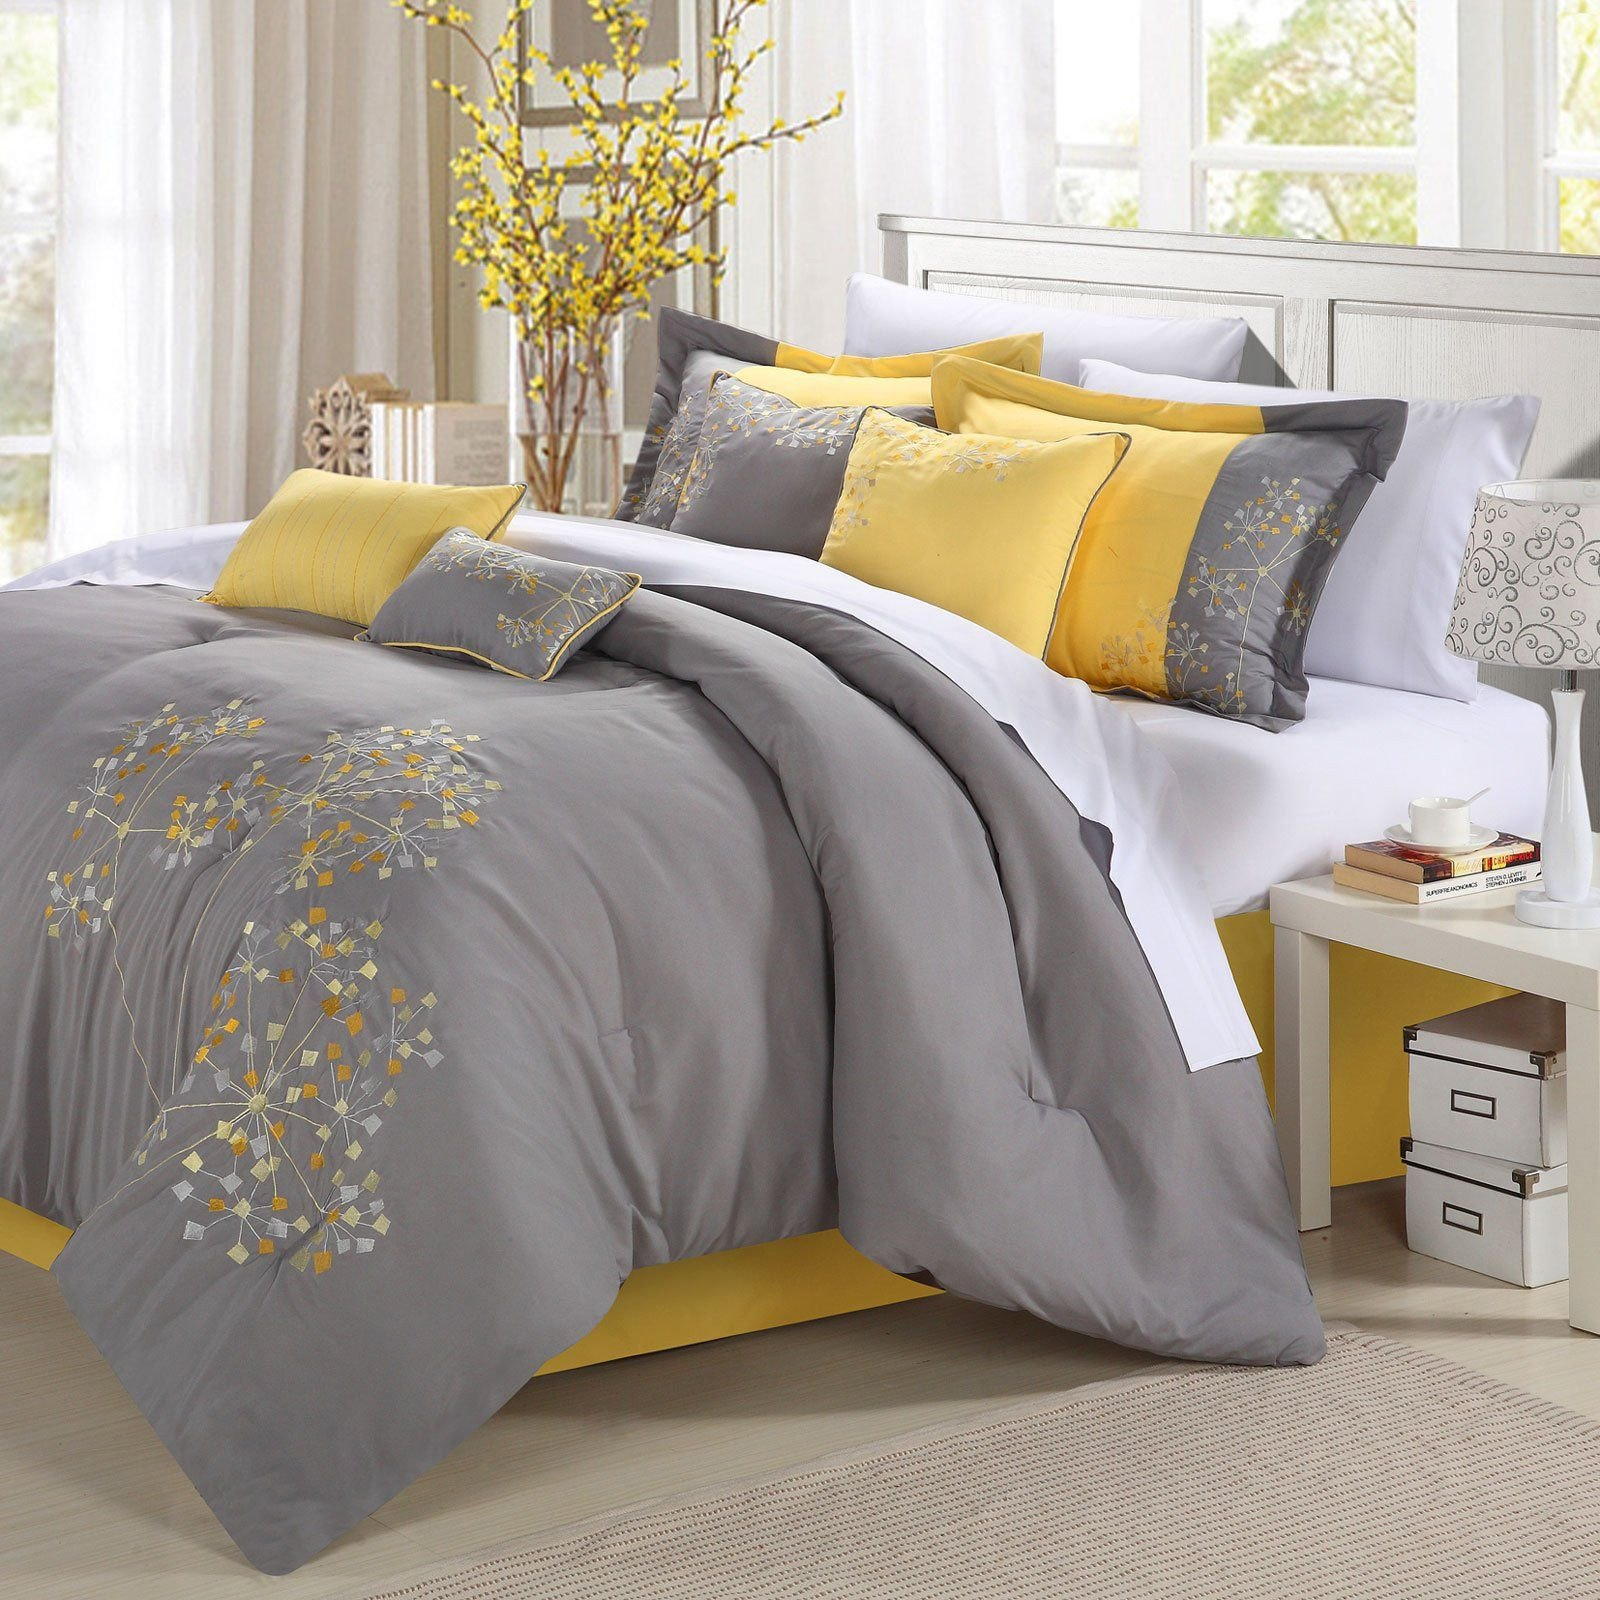 Yellow and Turquoise Bedroom Best Of Petunia forter Set by Chic Home Gray Turquoise 33 91